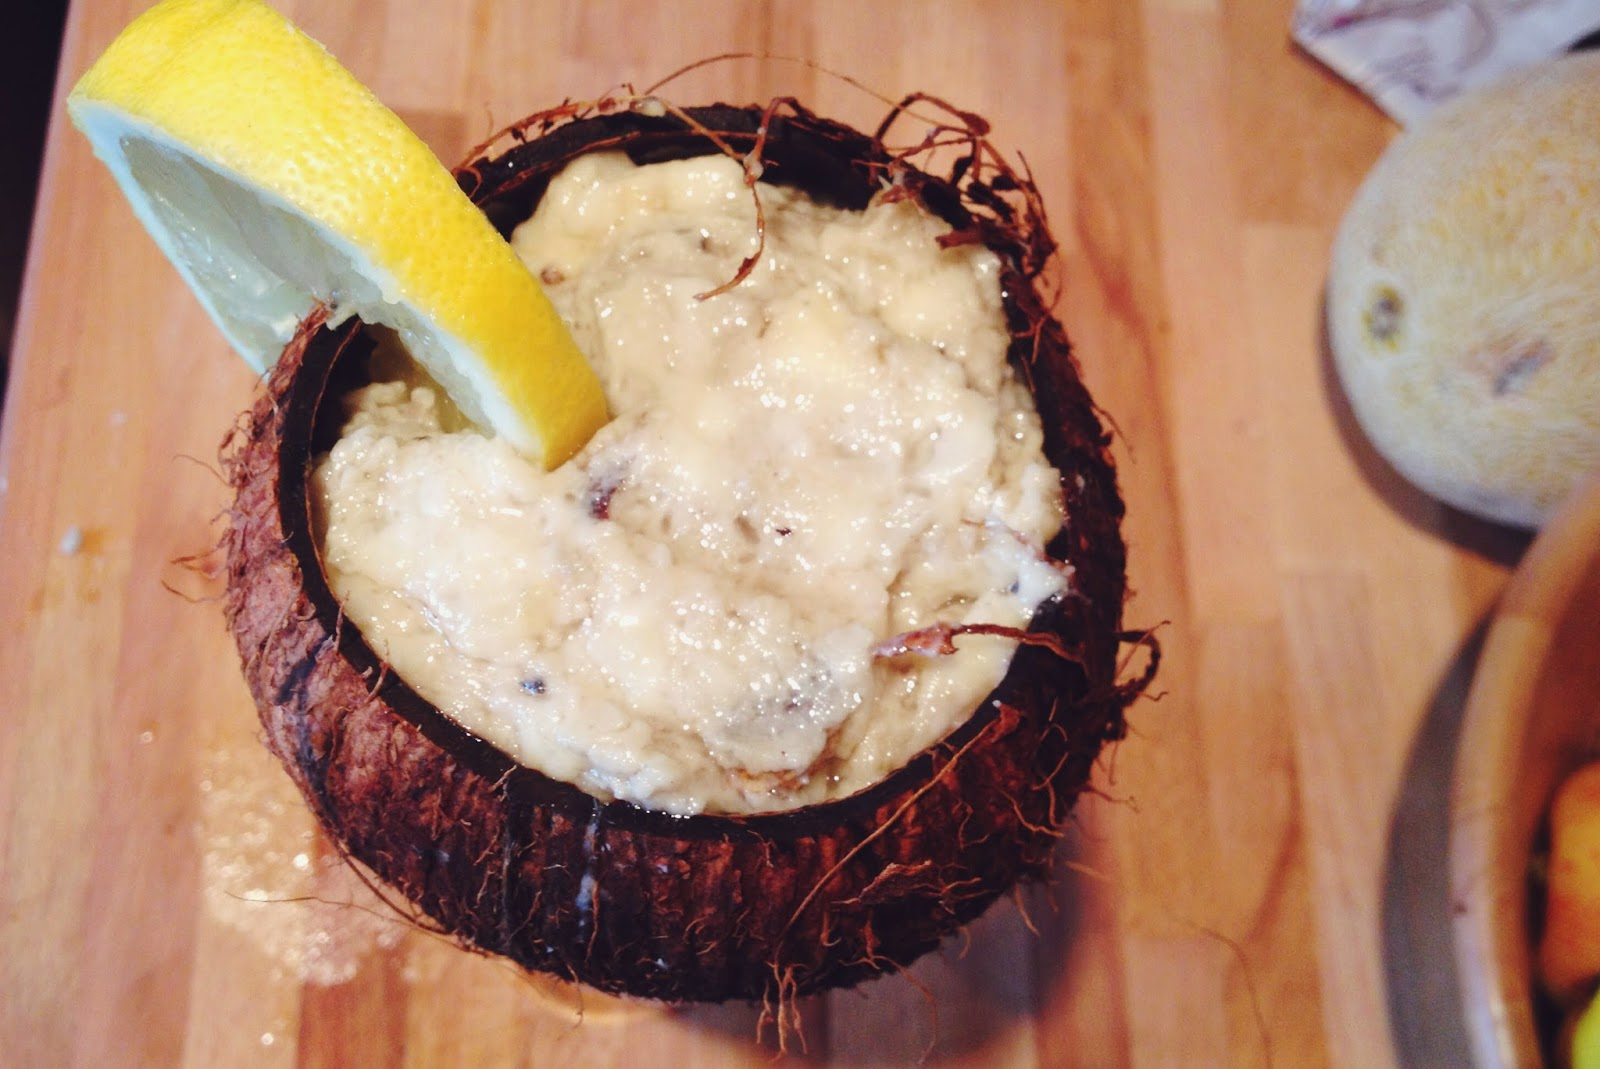 coconut hair mask, DIY banana hair mask, beauty blog, homemade hair mask, natural hair mask